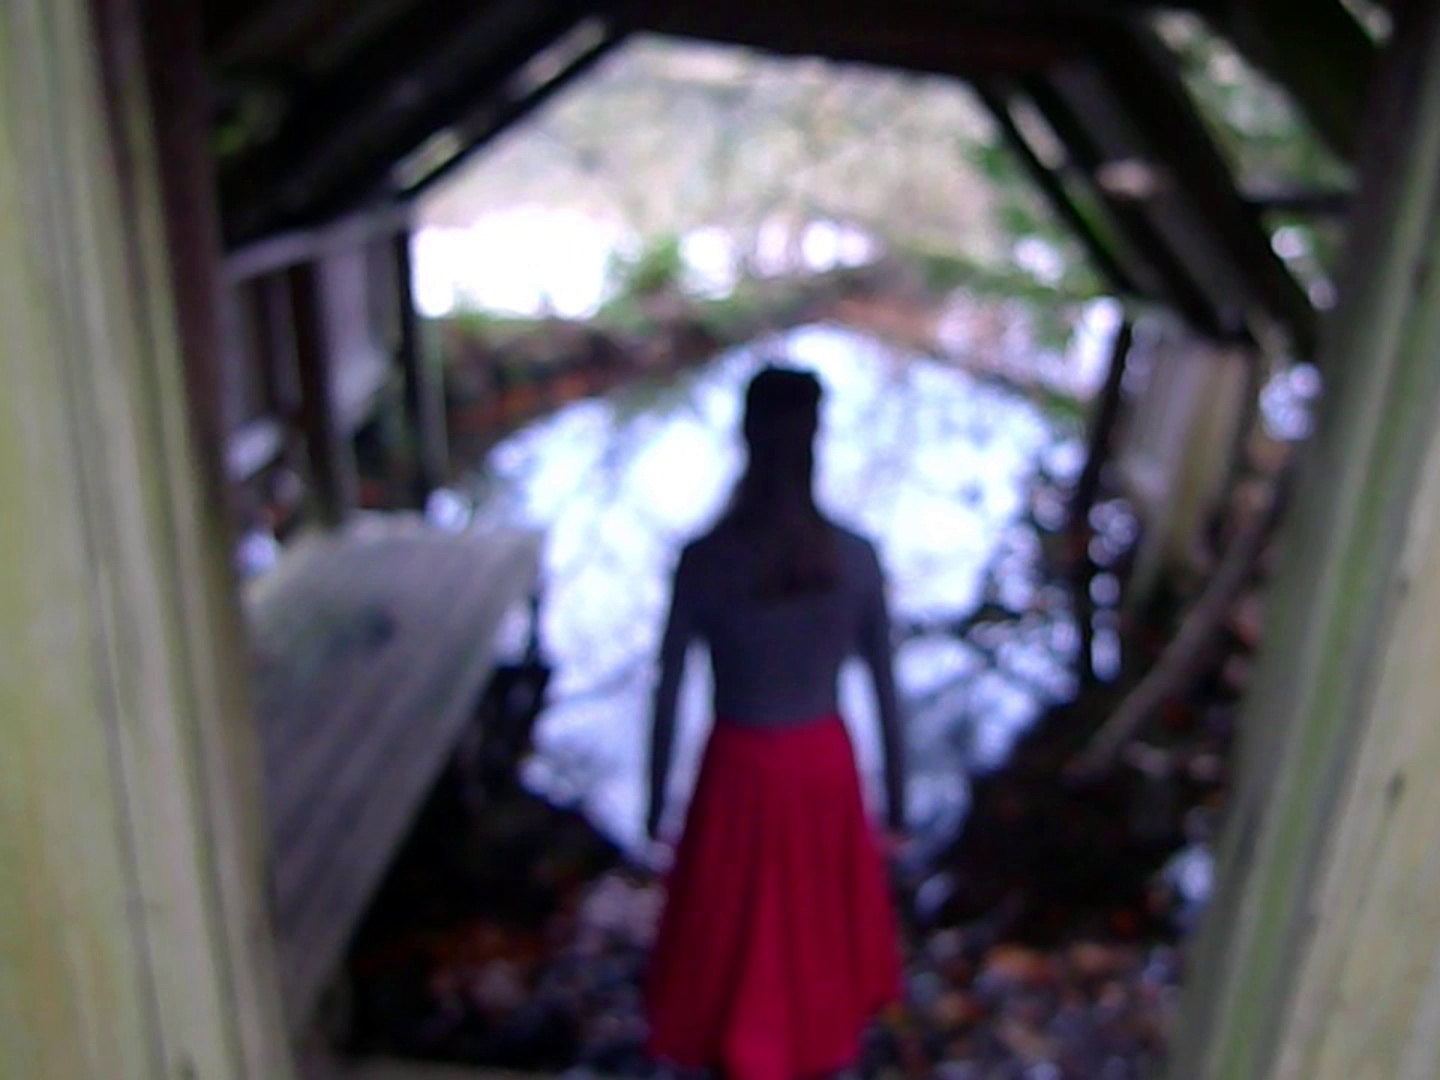 There Not There - Still by Paul Michael Henry     There Not There   Co-creation between Paul Michael Henry and Penny Chivas. Created with support from Dance Base, and screened at Screen.Dance Scotland UK Awards section 2019 and The Work Room 10th Anniversary 2018.